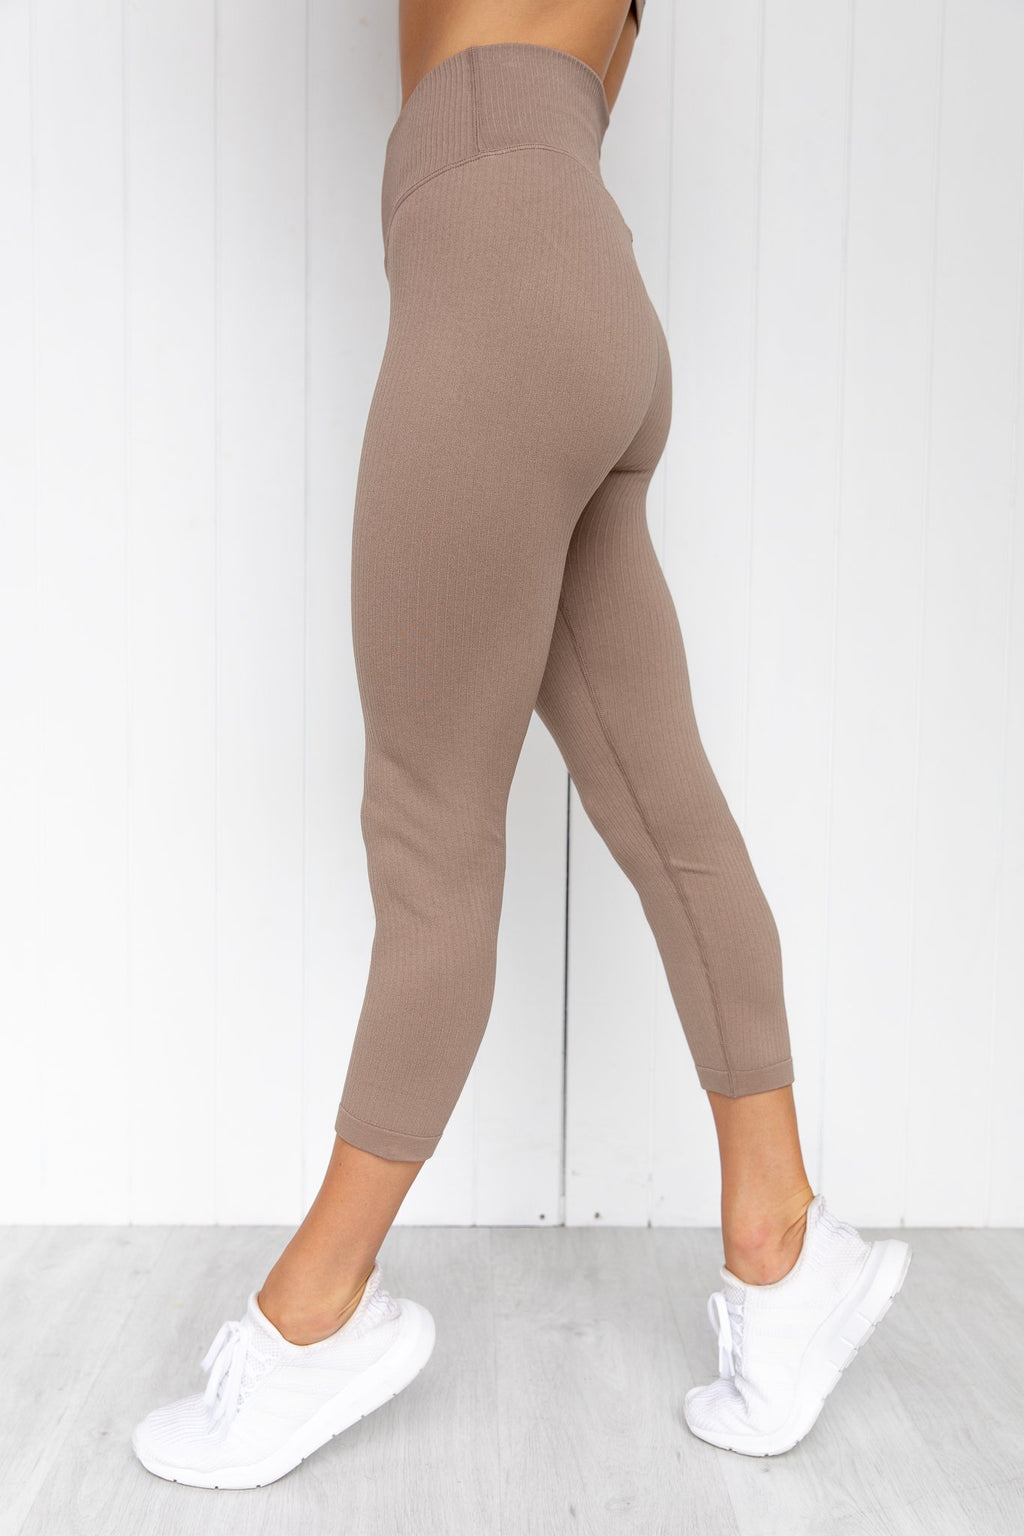 Espresso Ribbed Seamless 7/8 Tights - PURE DASH